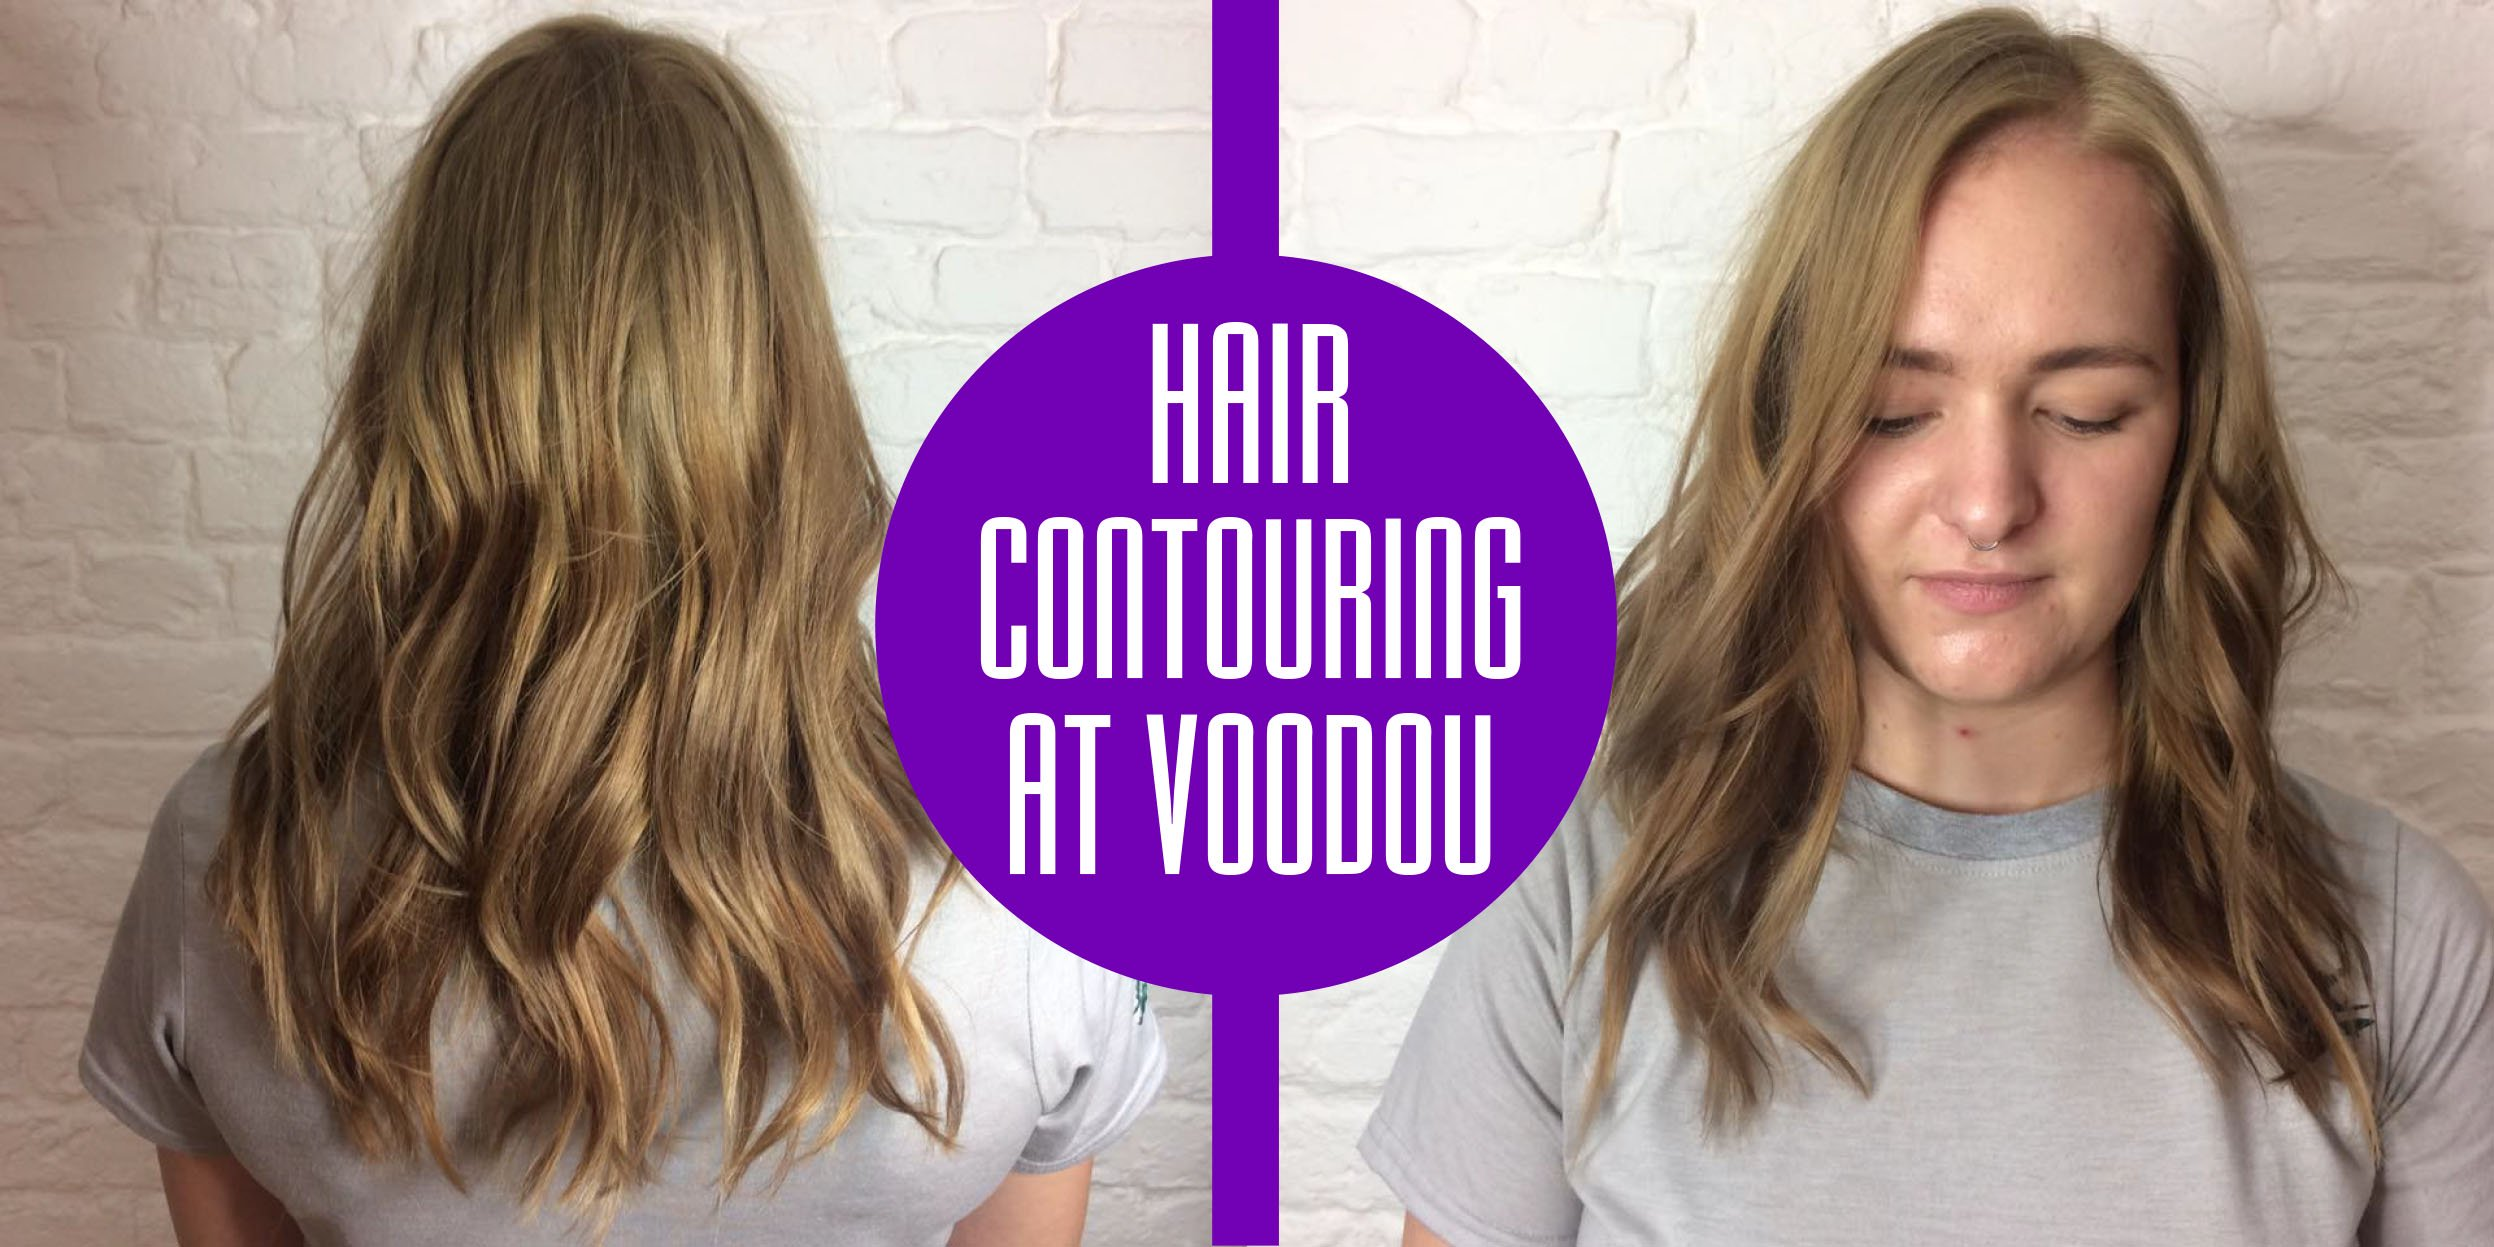 HAIR CONTOURING: HAIR TRENDS 2017